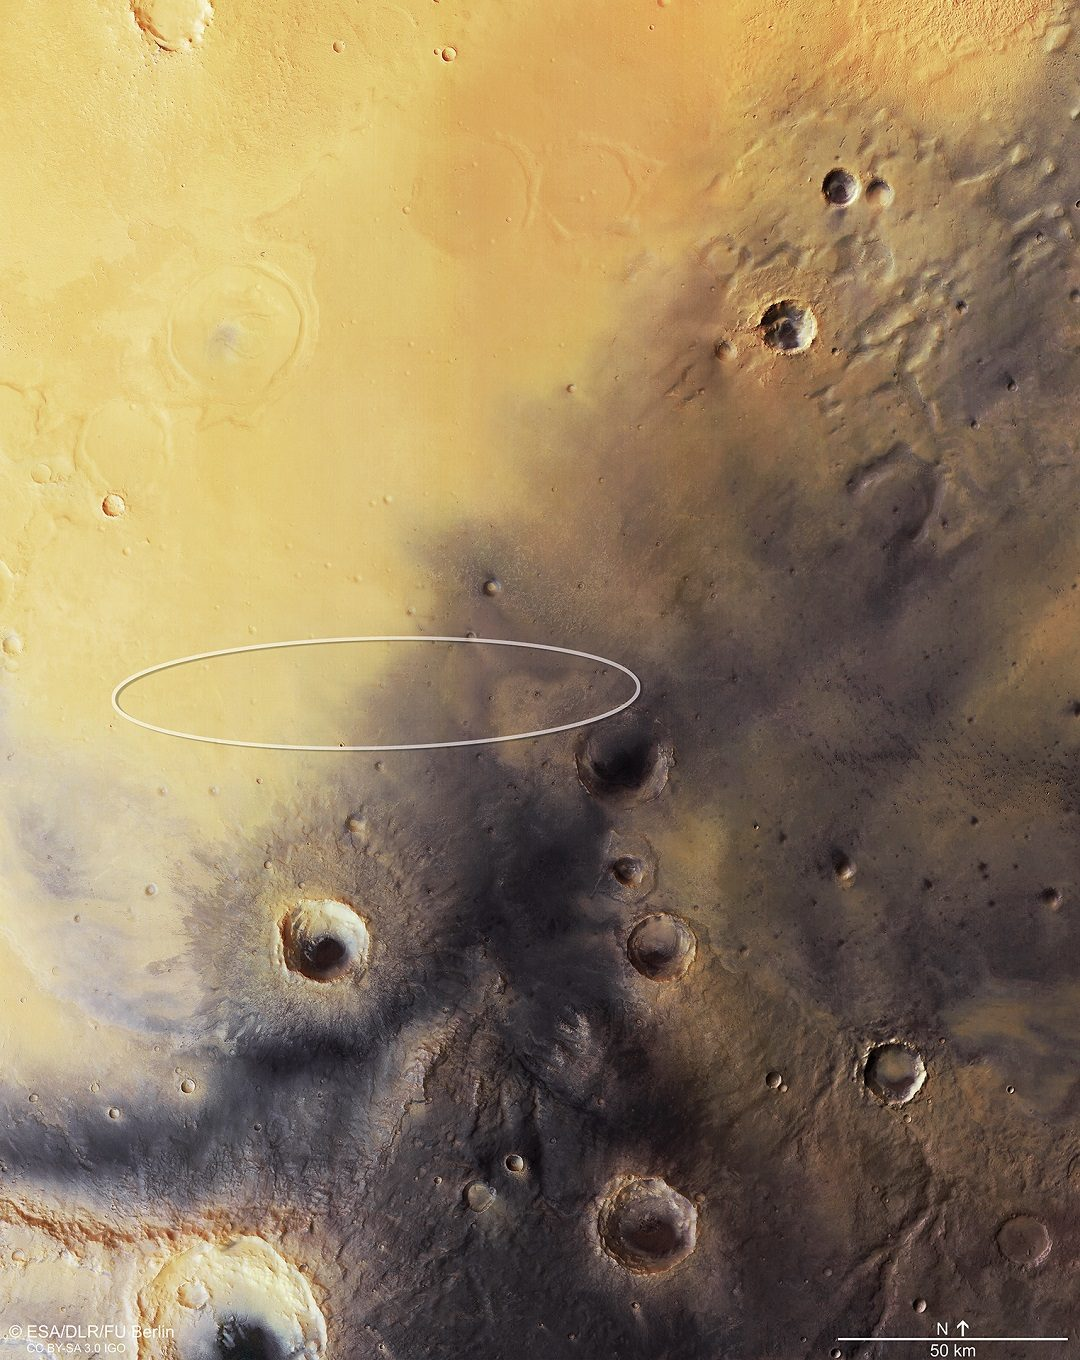 http://www.esa.int/var/esa/storage/images/esa_multimedia/images/2016/08/mars_express_image_of_schiaparelli_s_landing_site_with_ellipse/16091402-1-eng-GB/Mars_Express_image_of_Schiaparelli_s_landing_site_with_ellipse.jpg